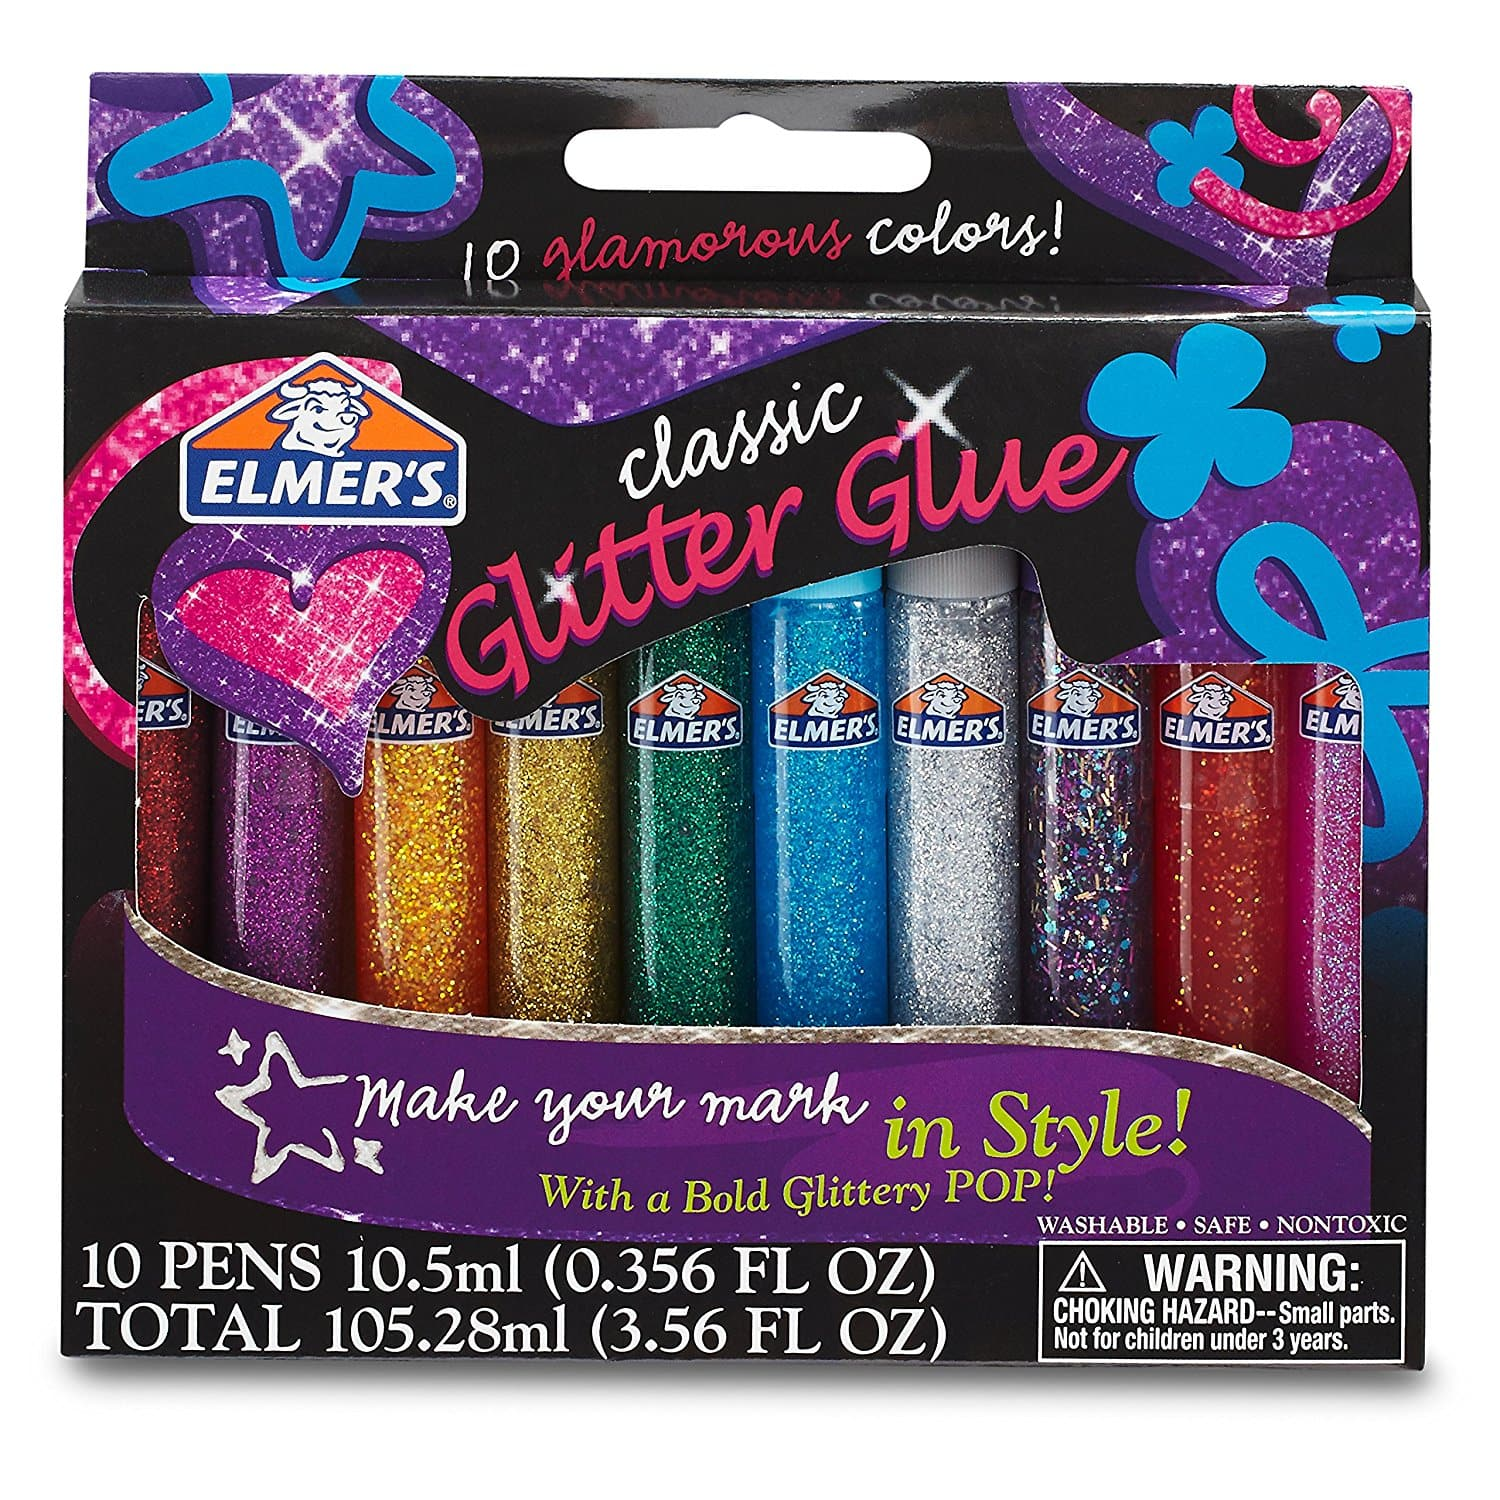 Elmer's 3D Washable Glitter Glue Pens, Classic Rainbow, Pack of 10 Pens  Add-On $2.99